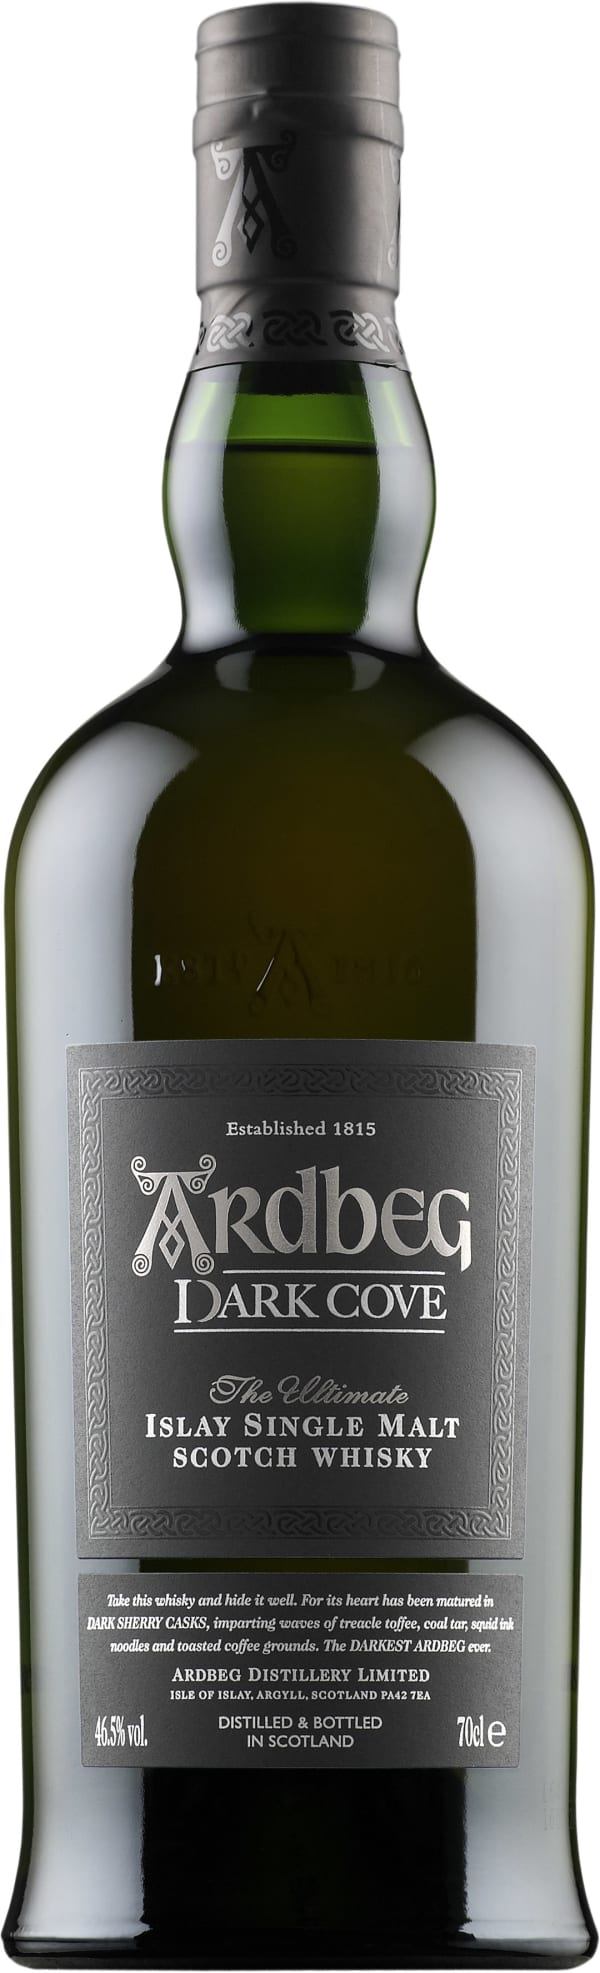 Ardbeg Dark Cove Single Malt